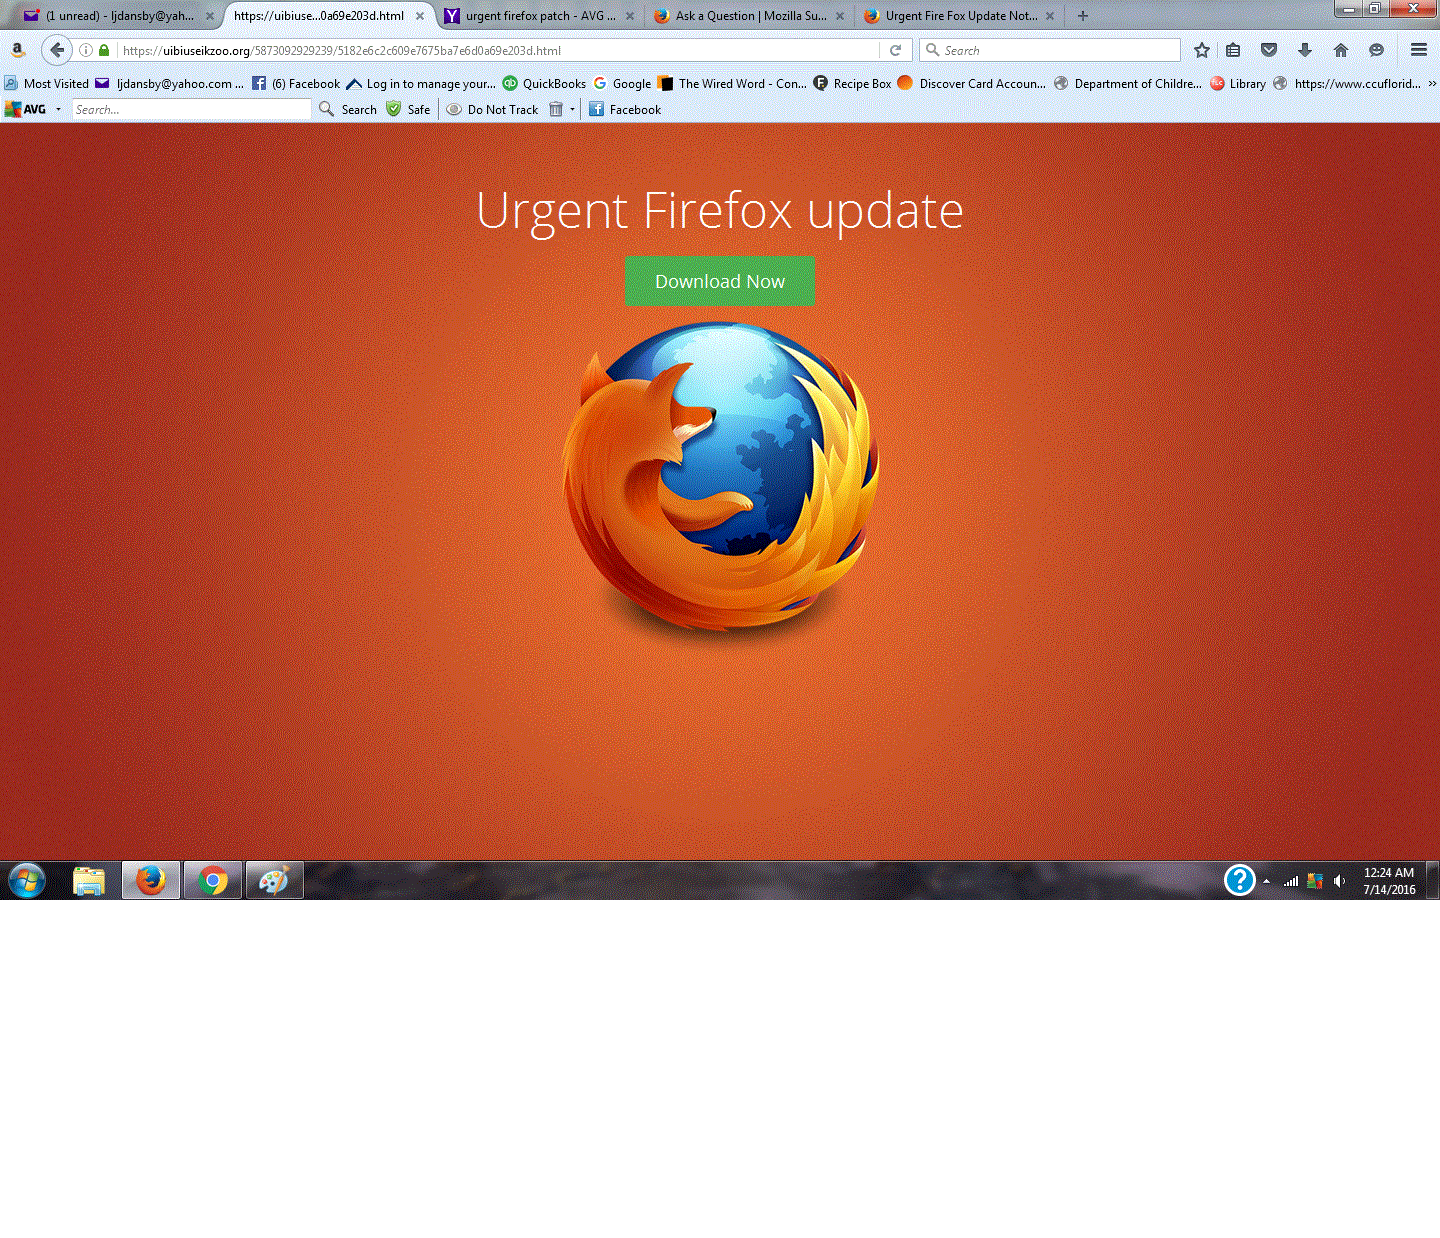 Question | Mozilla Support